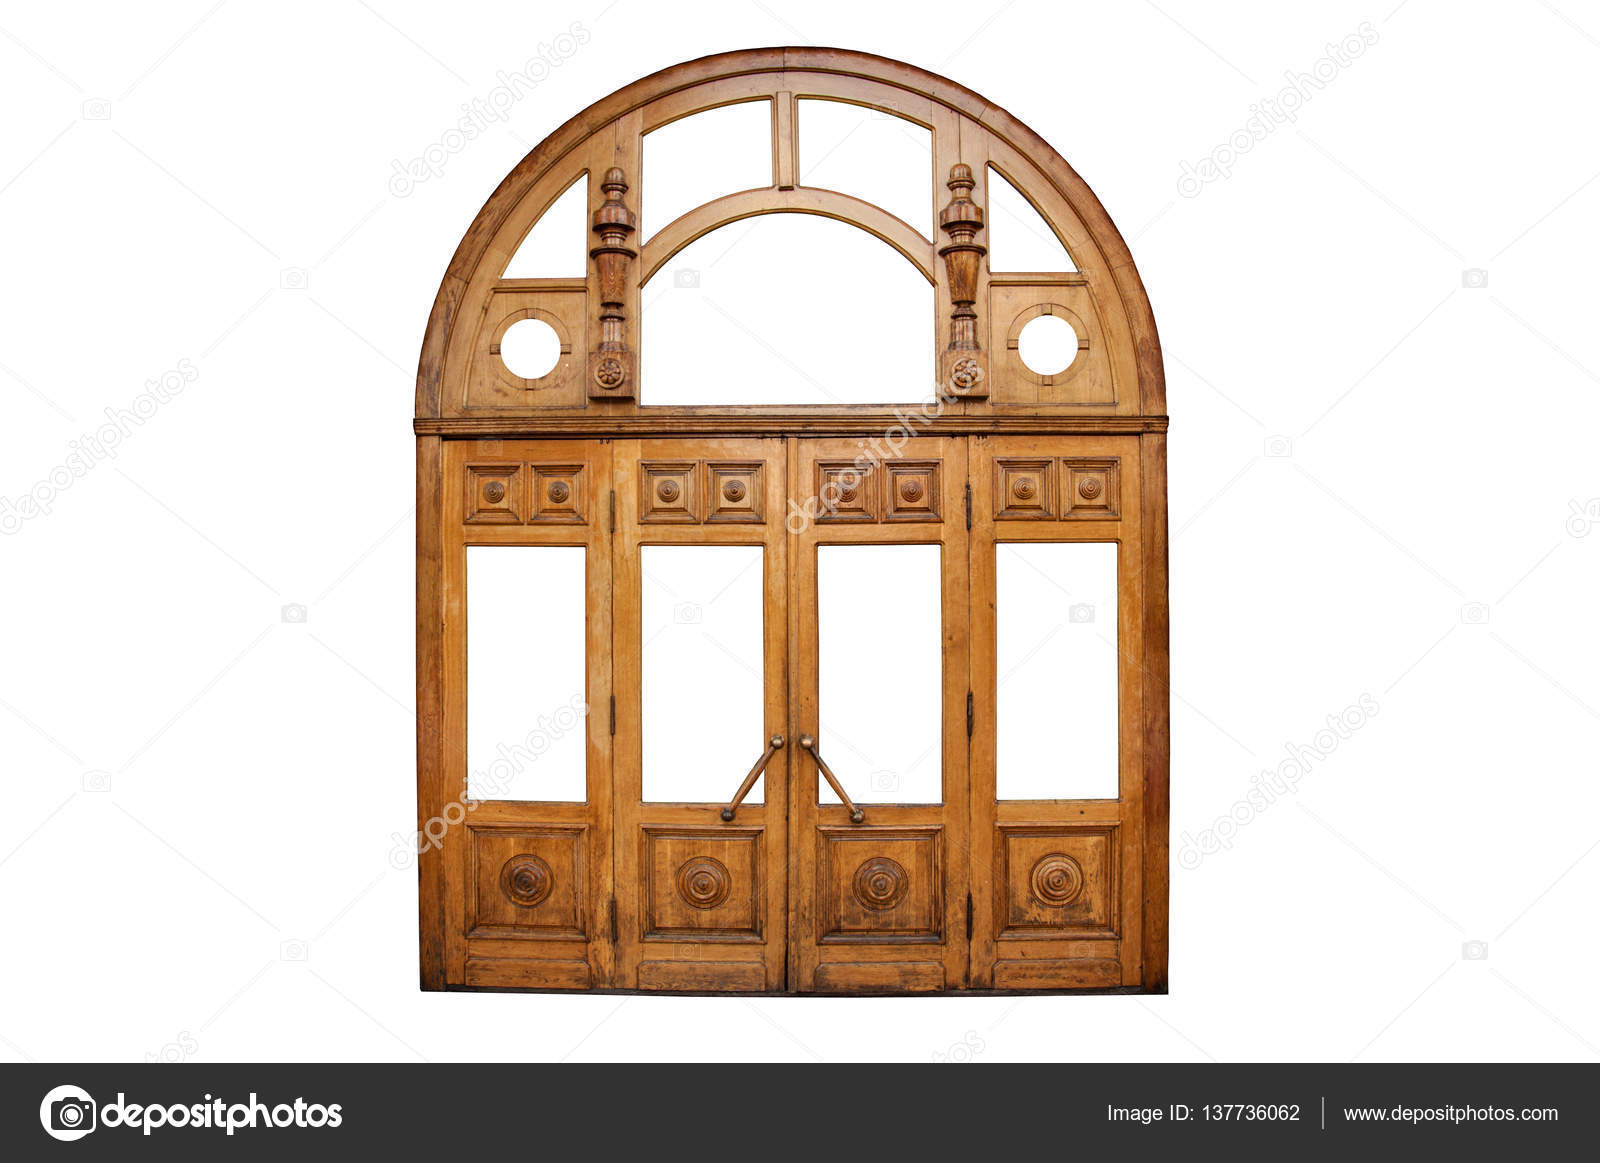 Big old wooden doors decorated with carvings u2014 Stock Photo  sc 1 st  Depositphotos & Big old wooden doors decorated with carvings u2014 Stock Photo ...